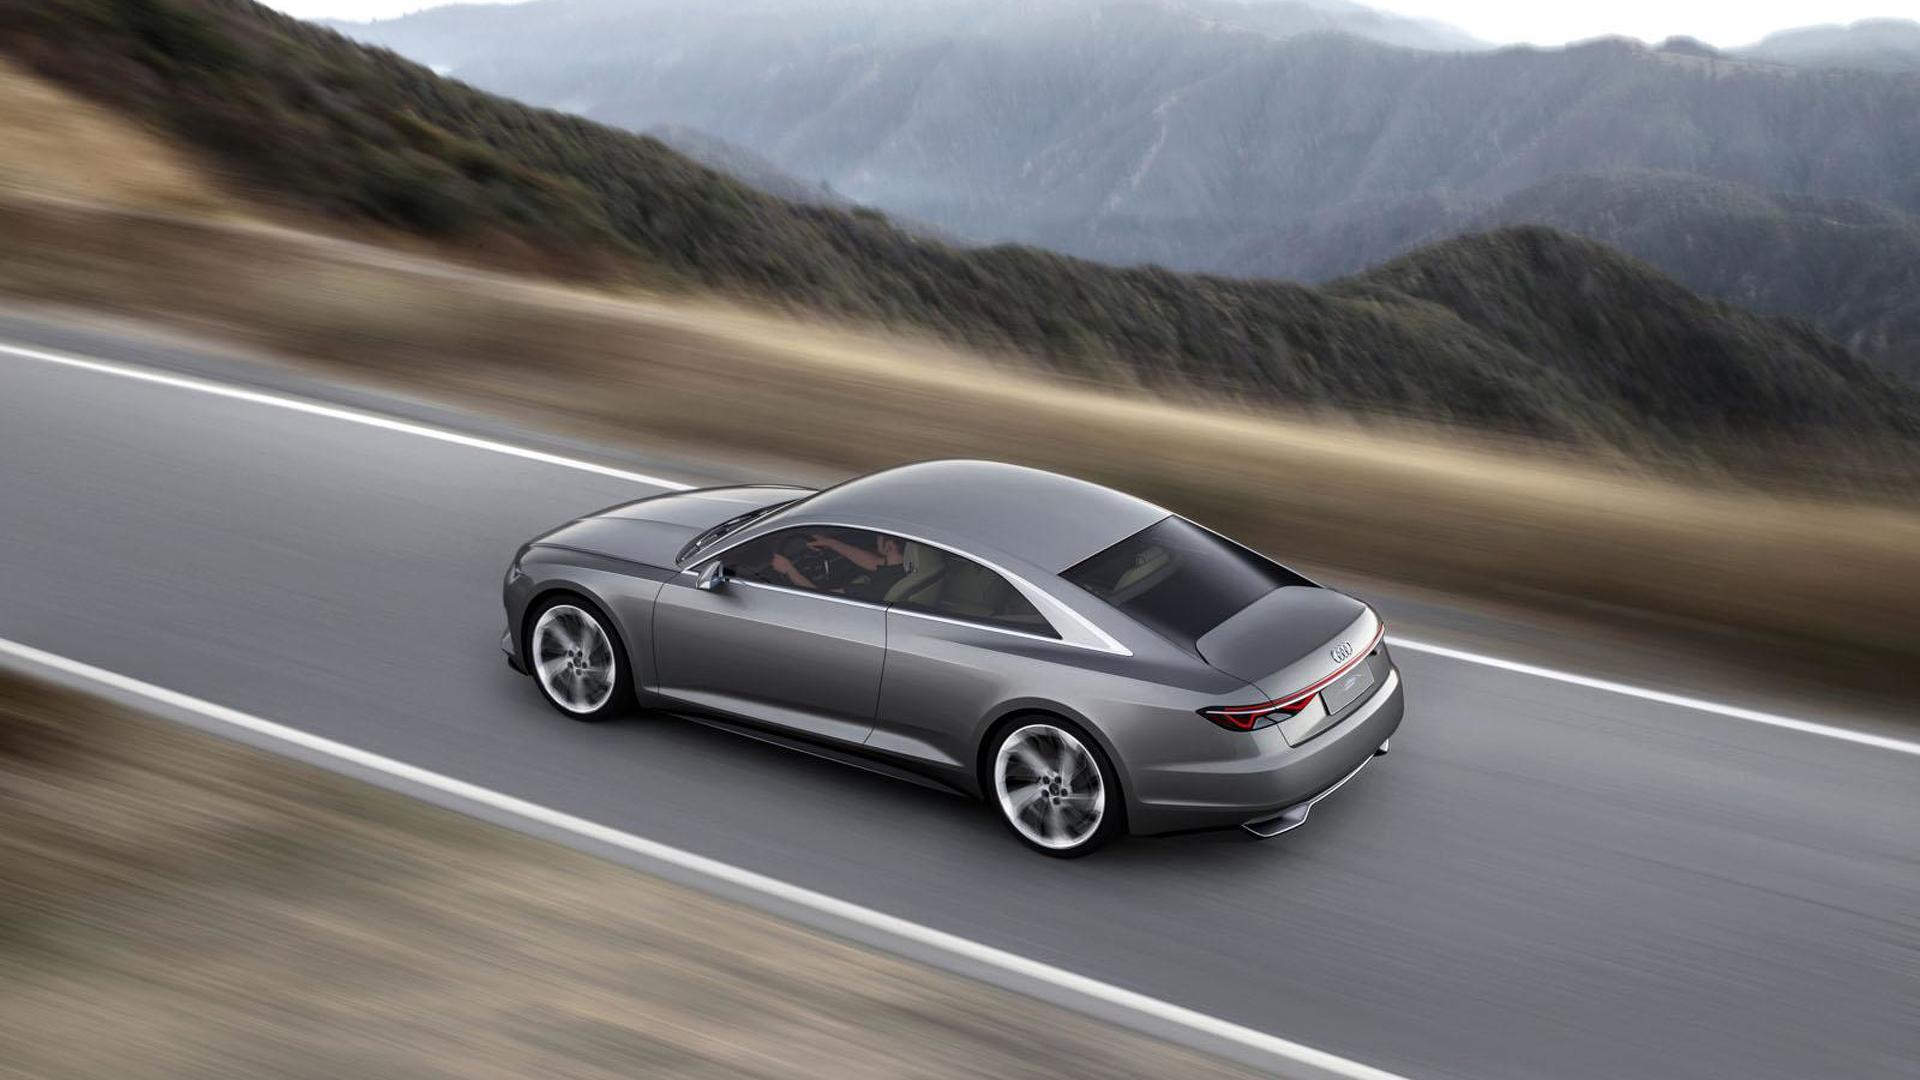 Audi Prologue Piloted Driving от Марка Лихте